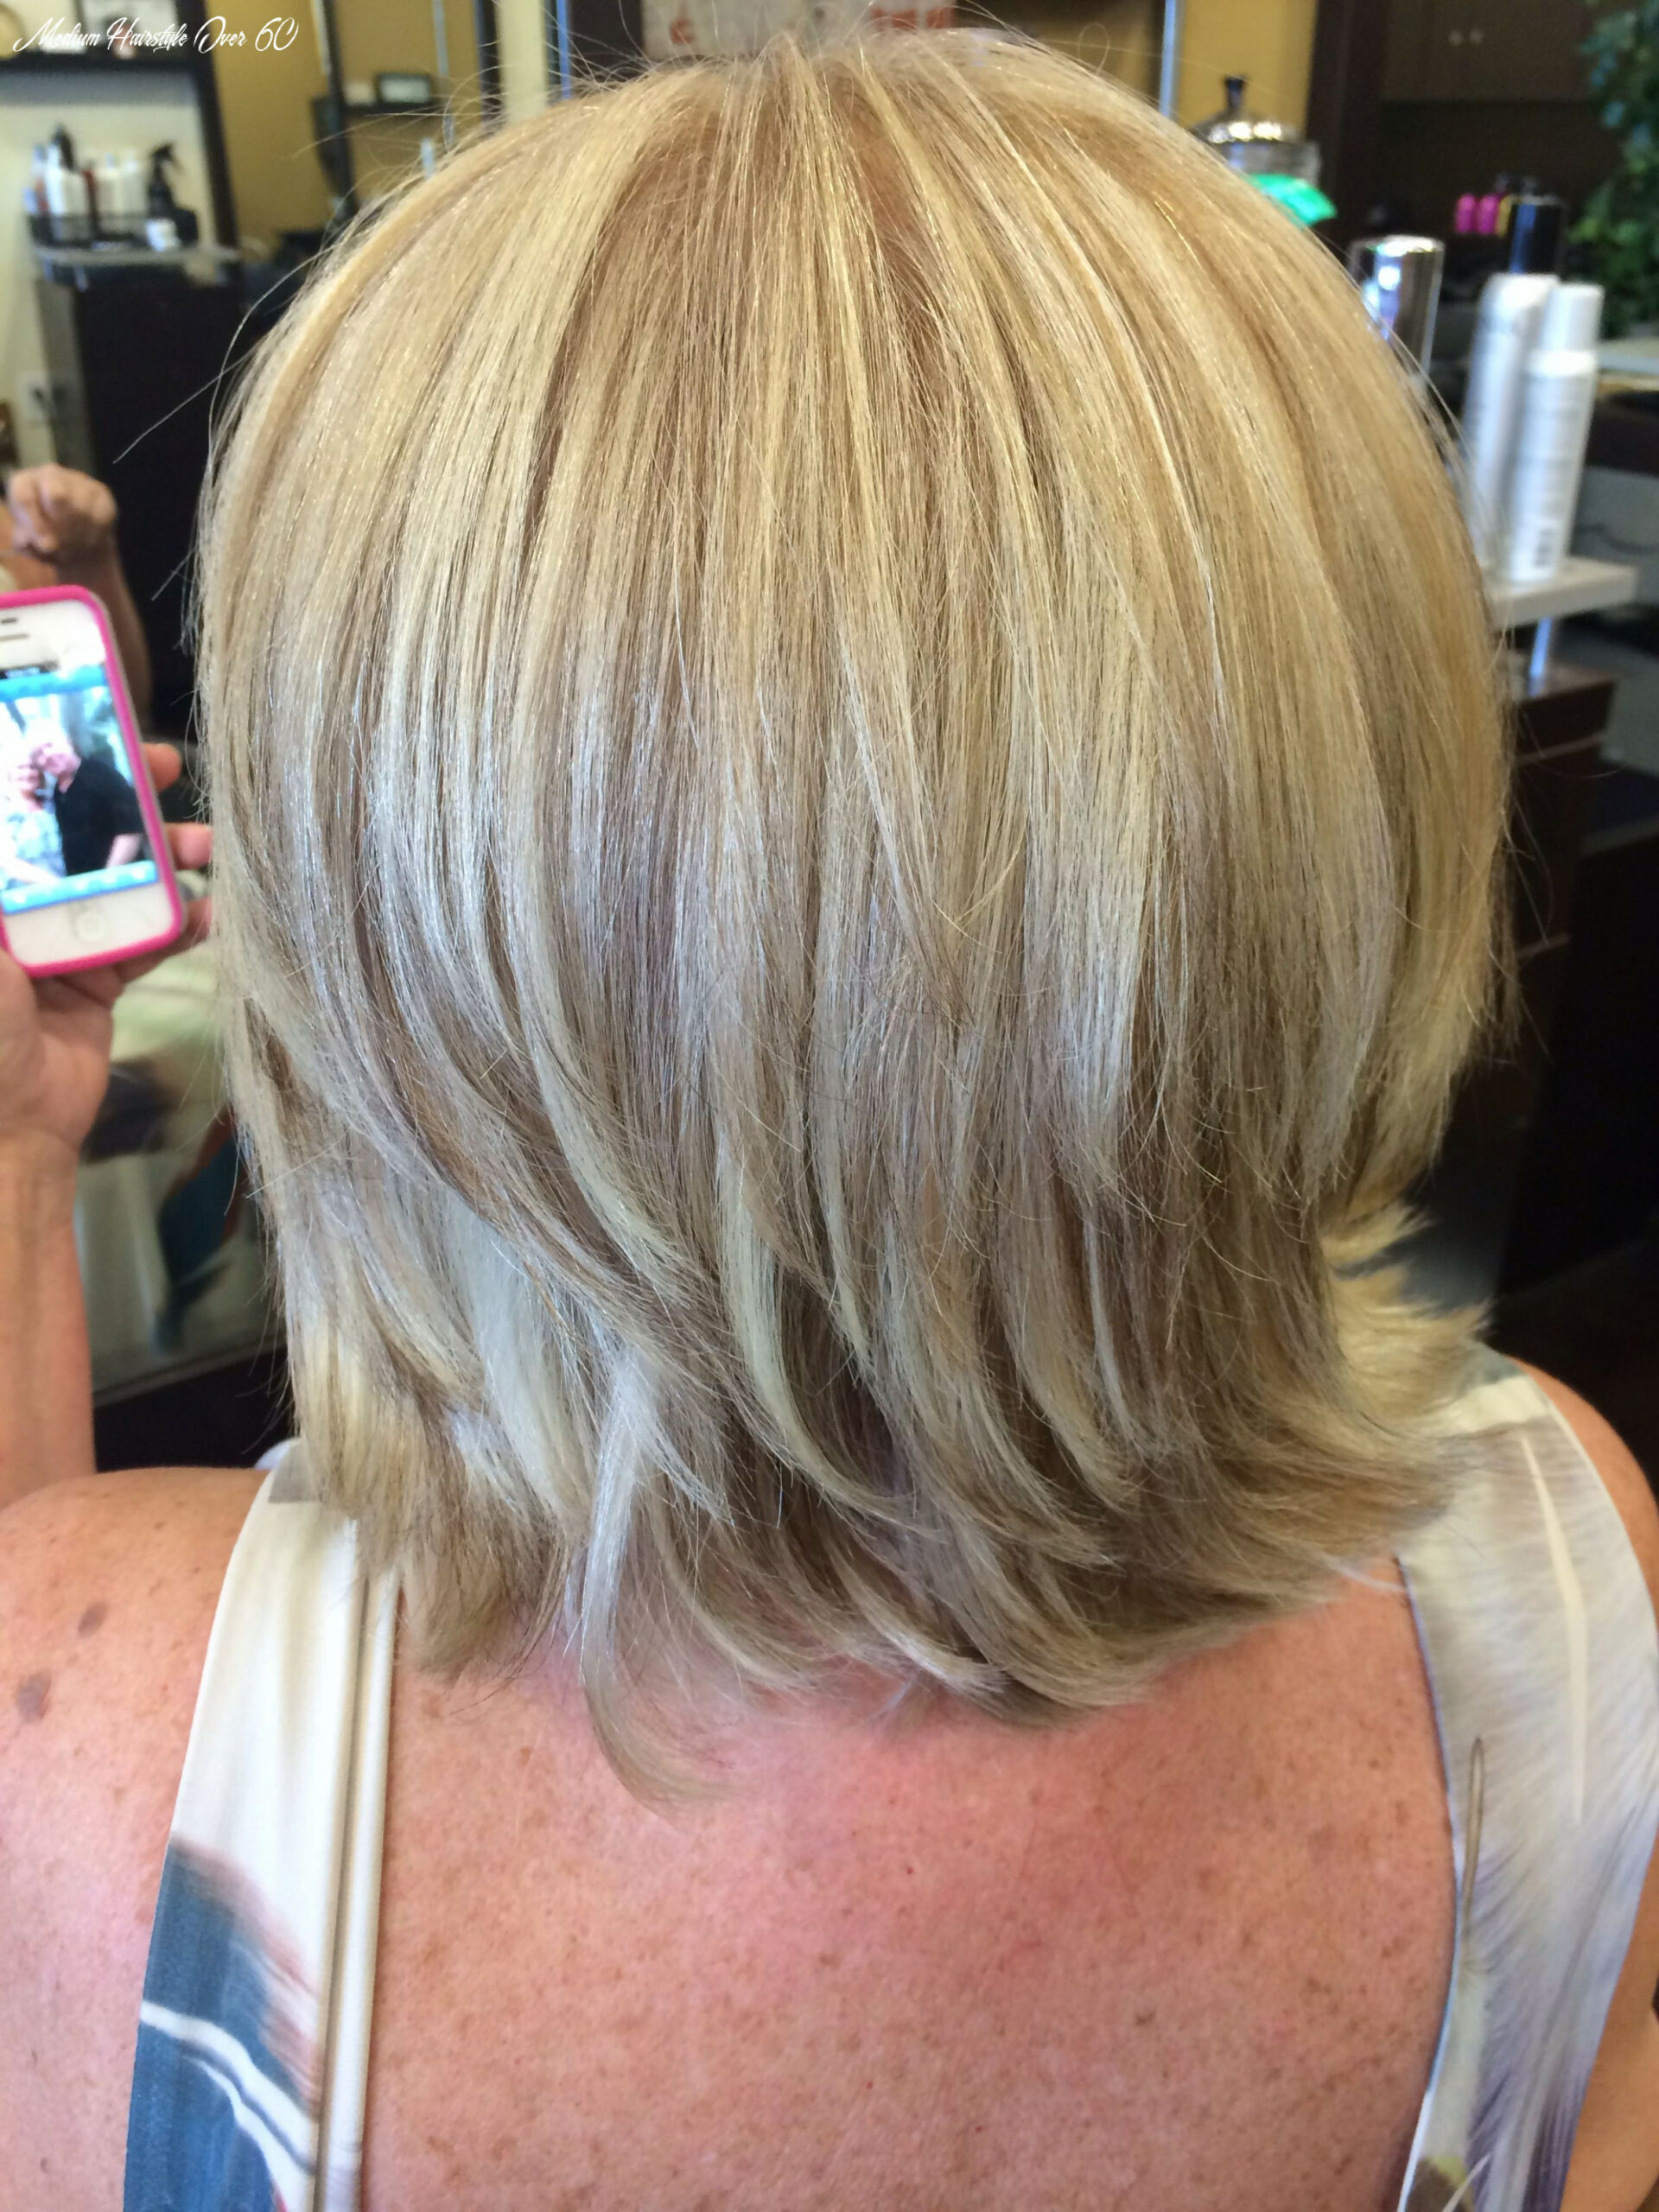 Not quite enough contrast in the highlights   over 10 hairstyles